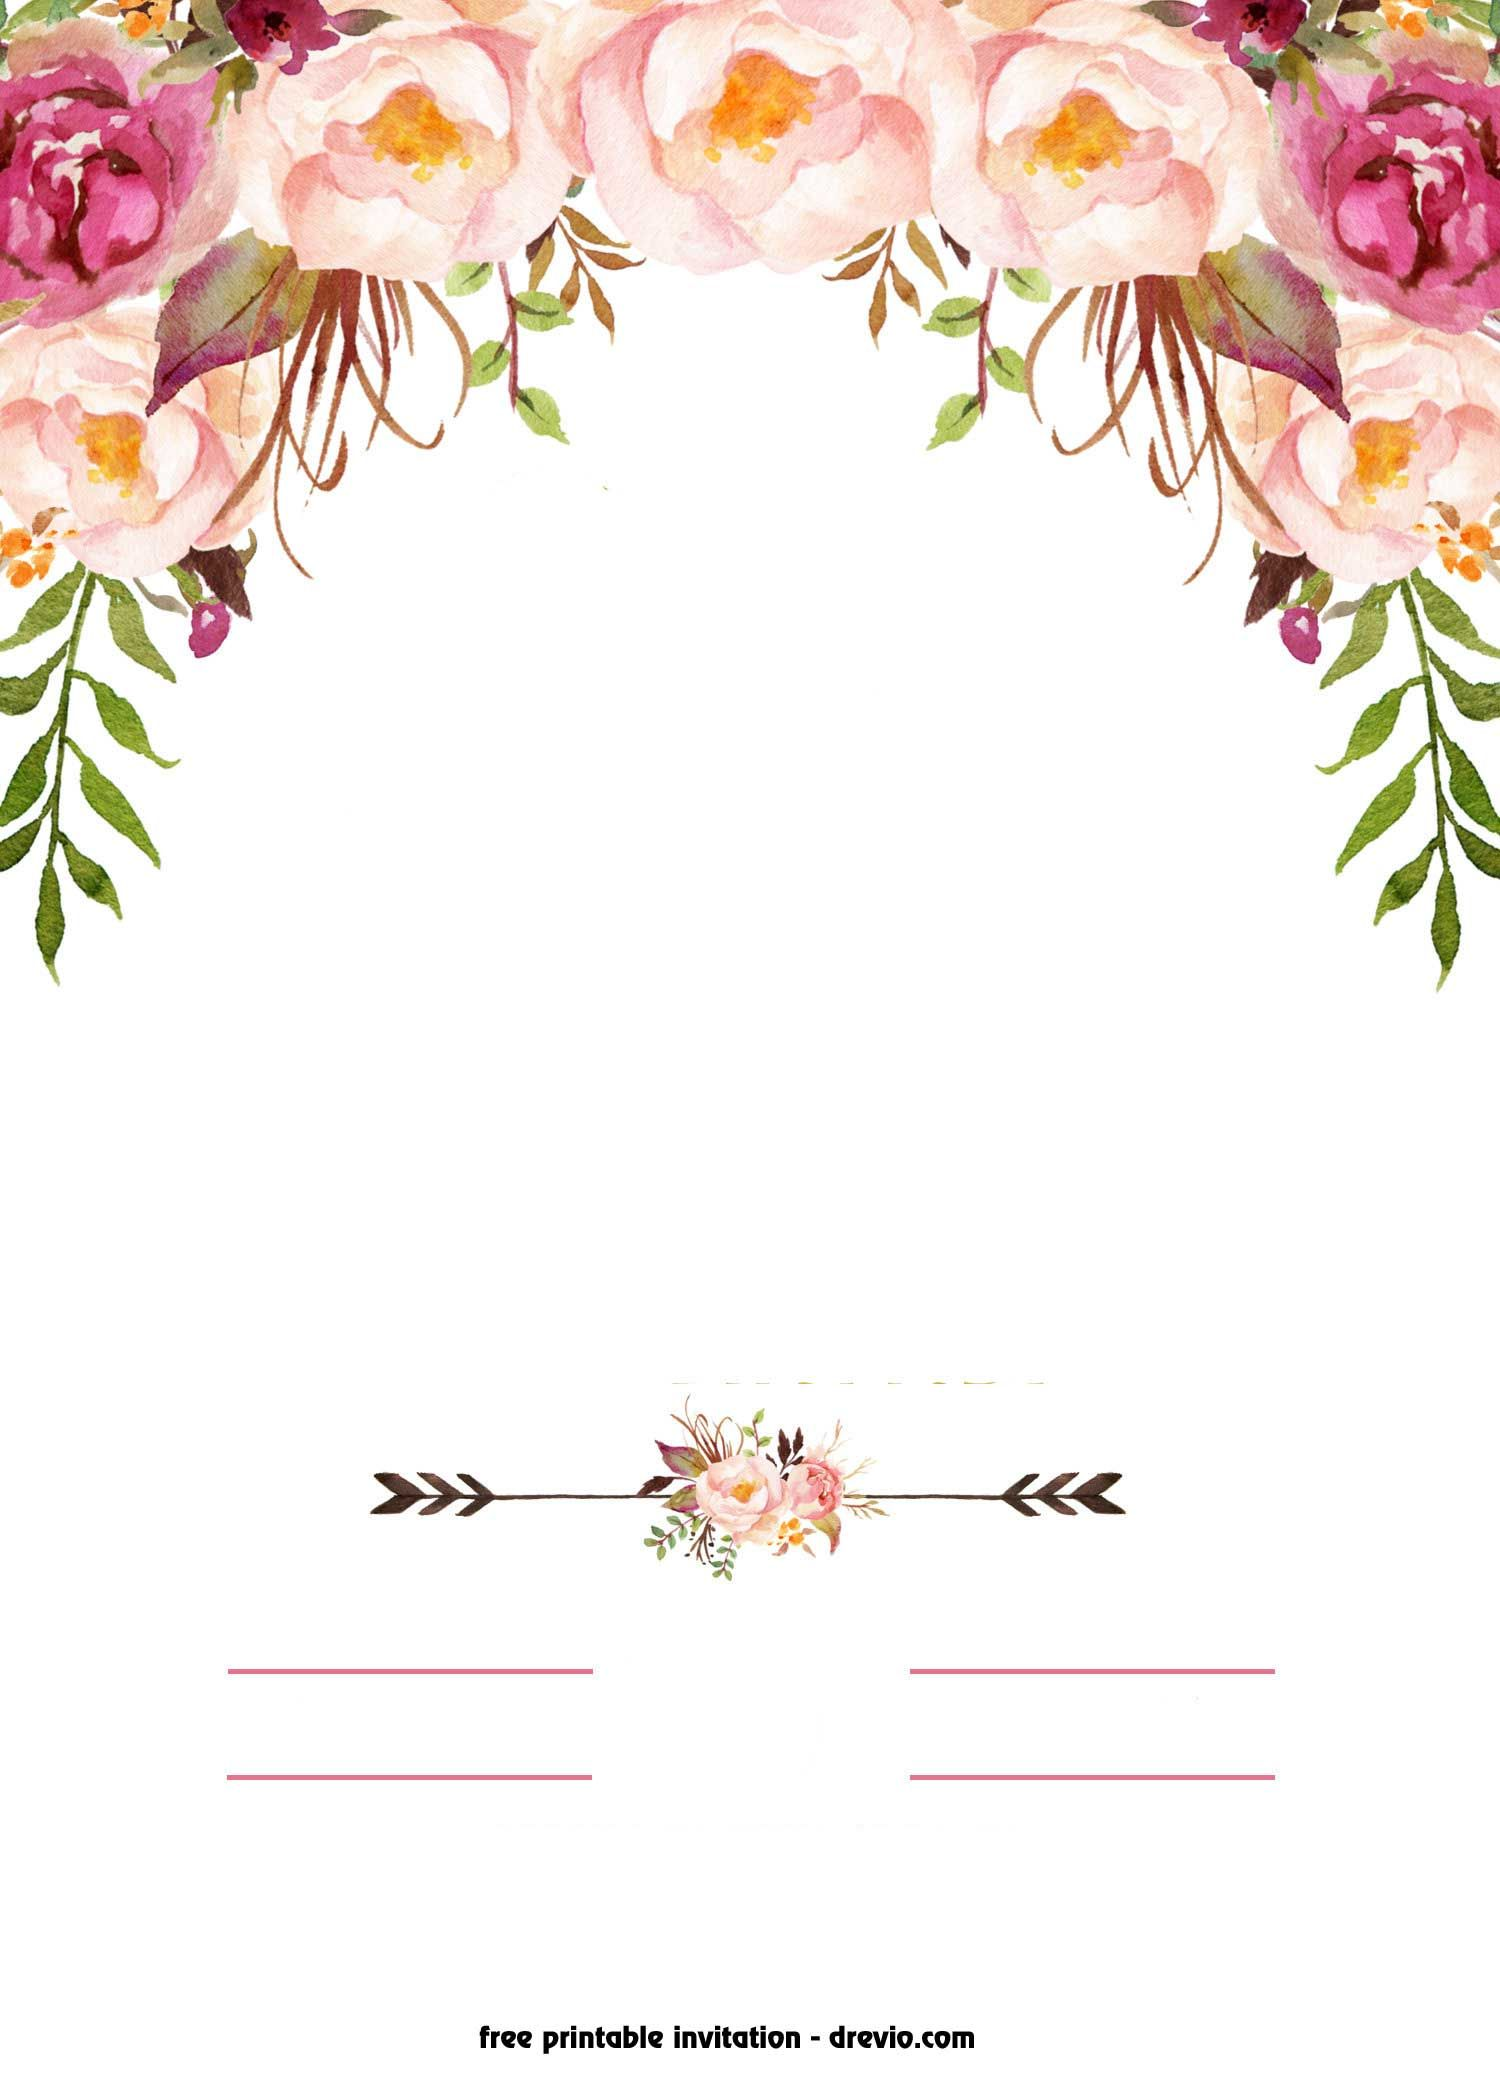 FREE Printable Boho Chic Flower Baby Shower Invitation.